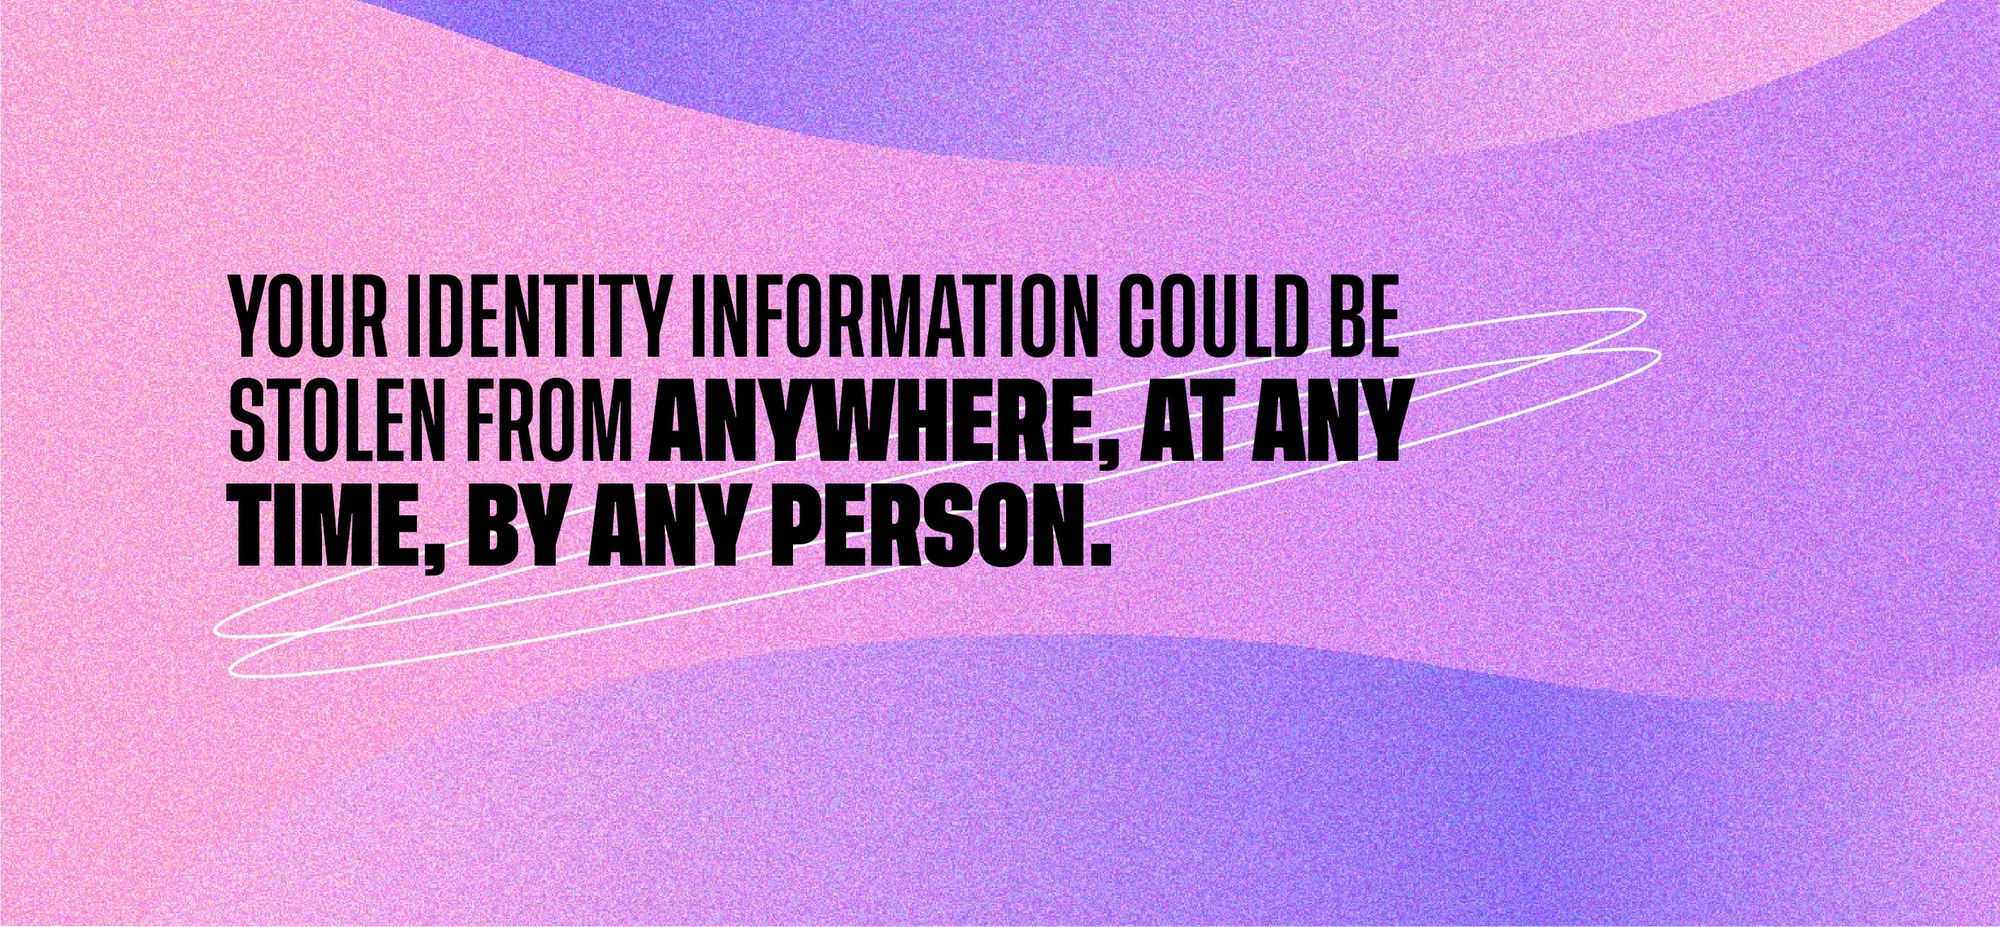 Your identity information could be stolen from anywhere, at any time, by any person.